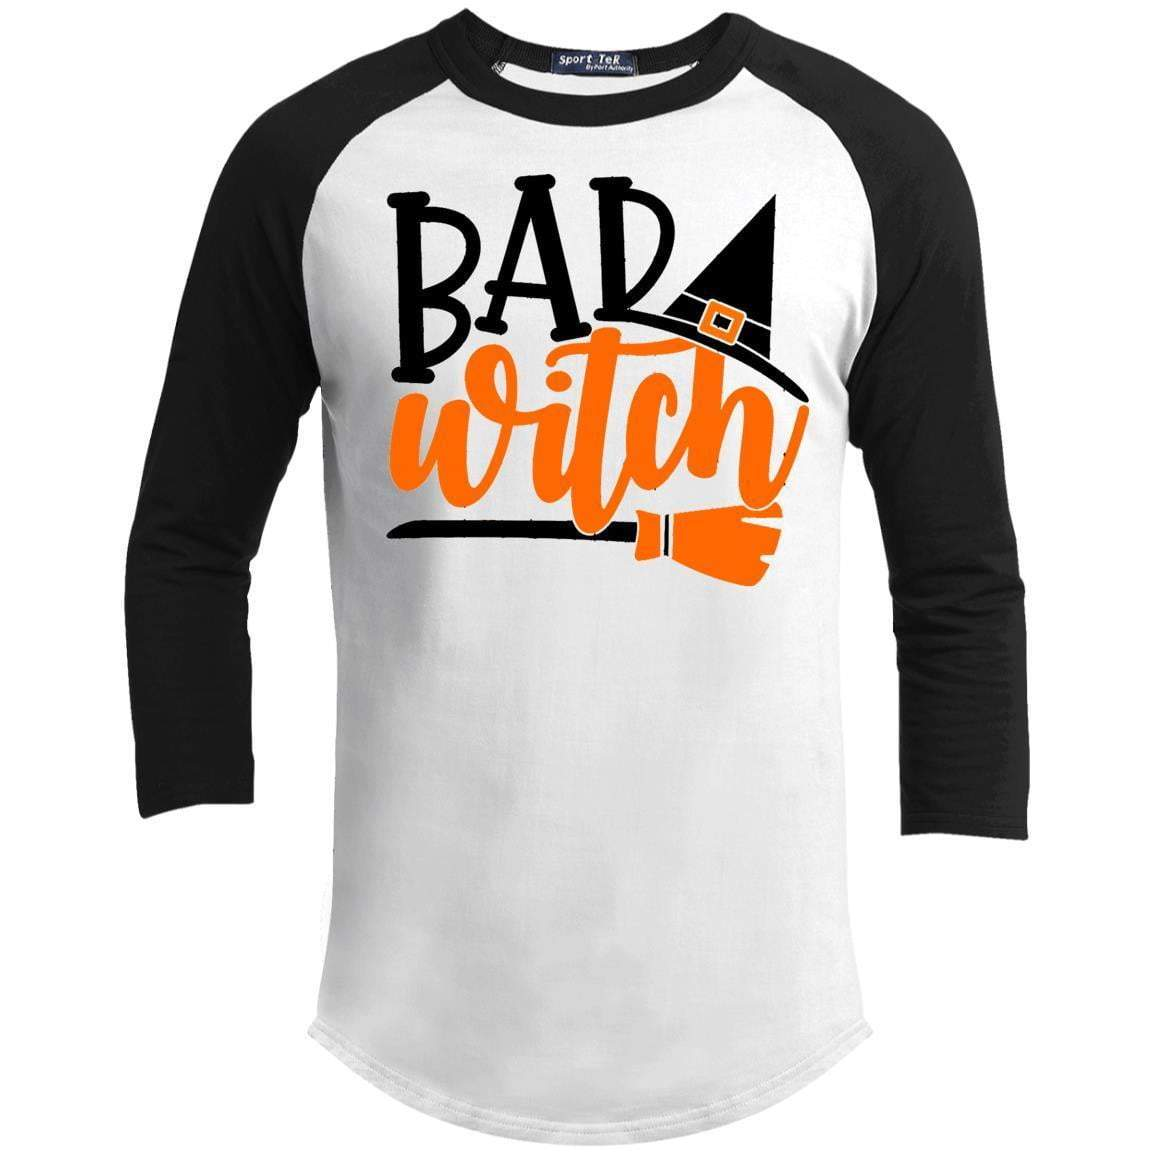 BAD WITCH Unisex 3/4 Sleeve Raglan